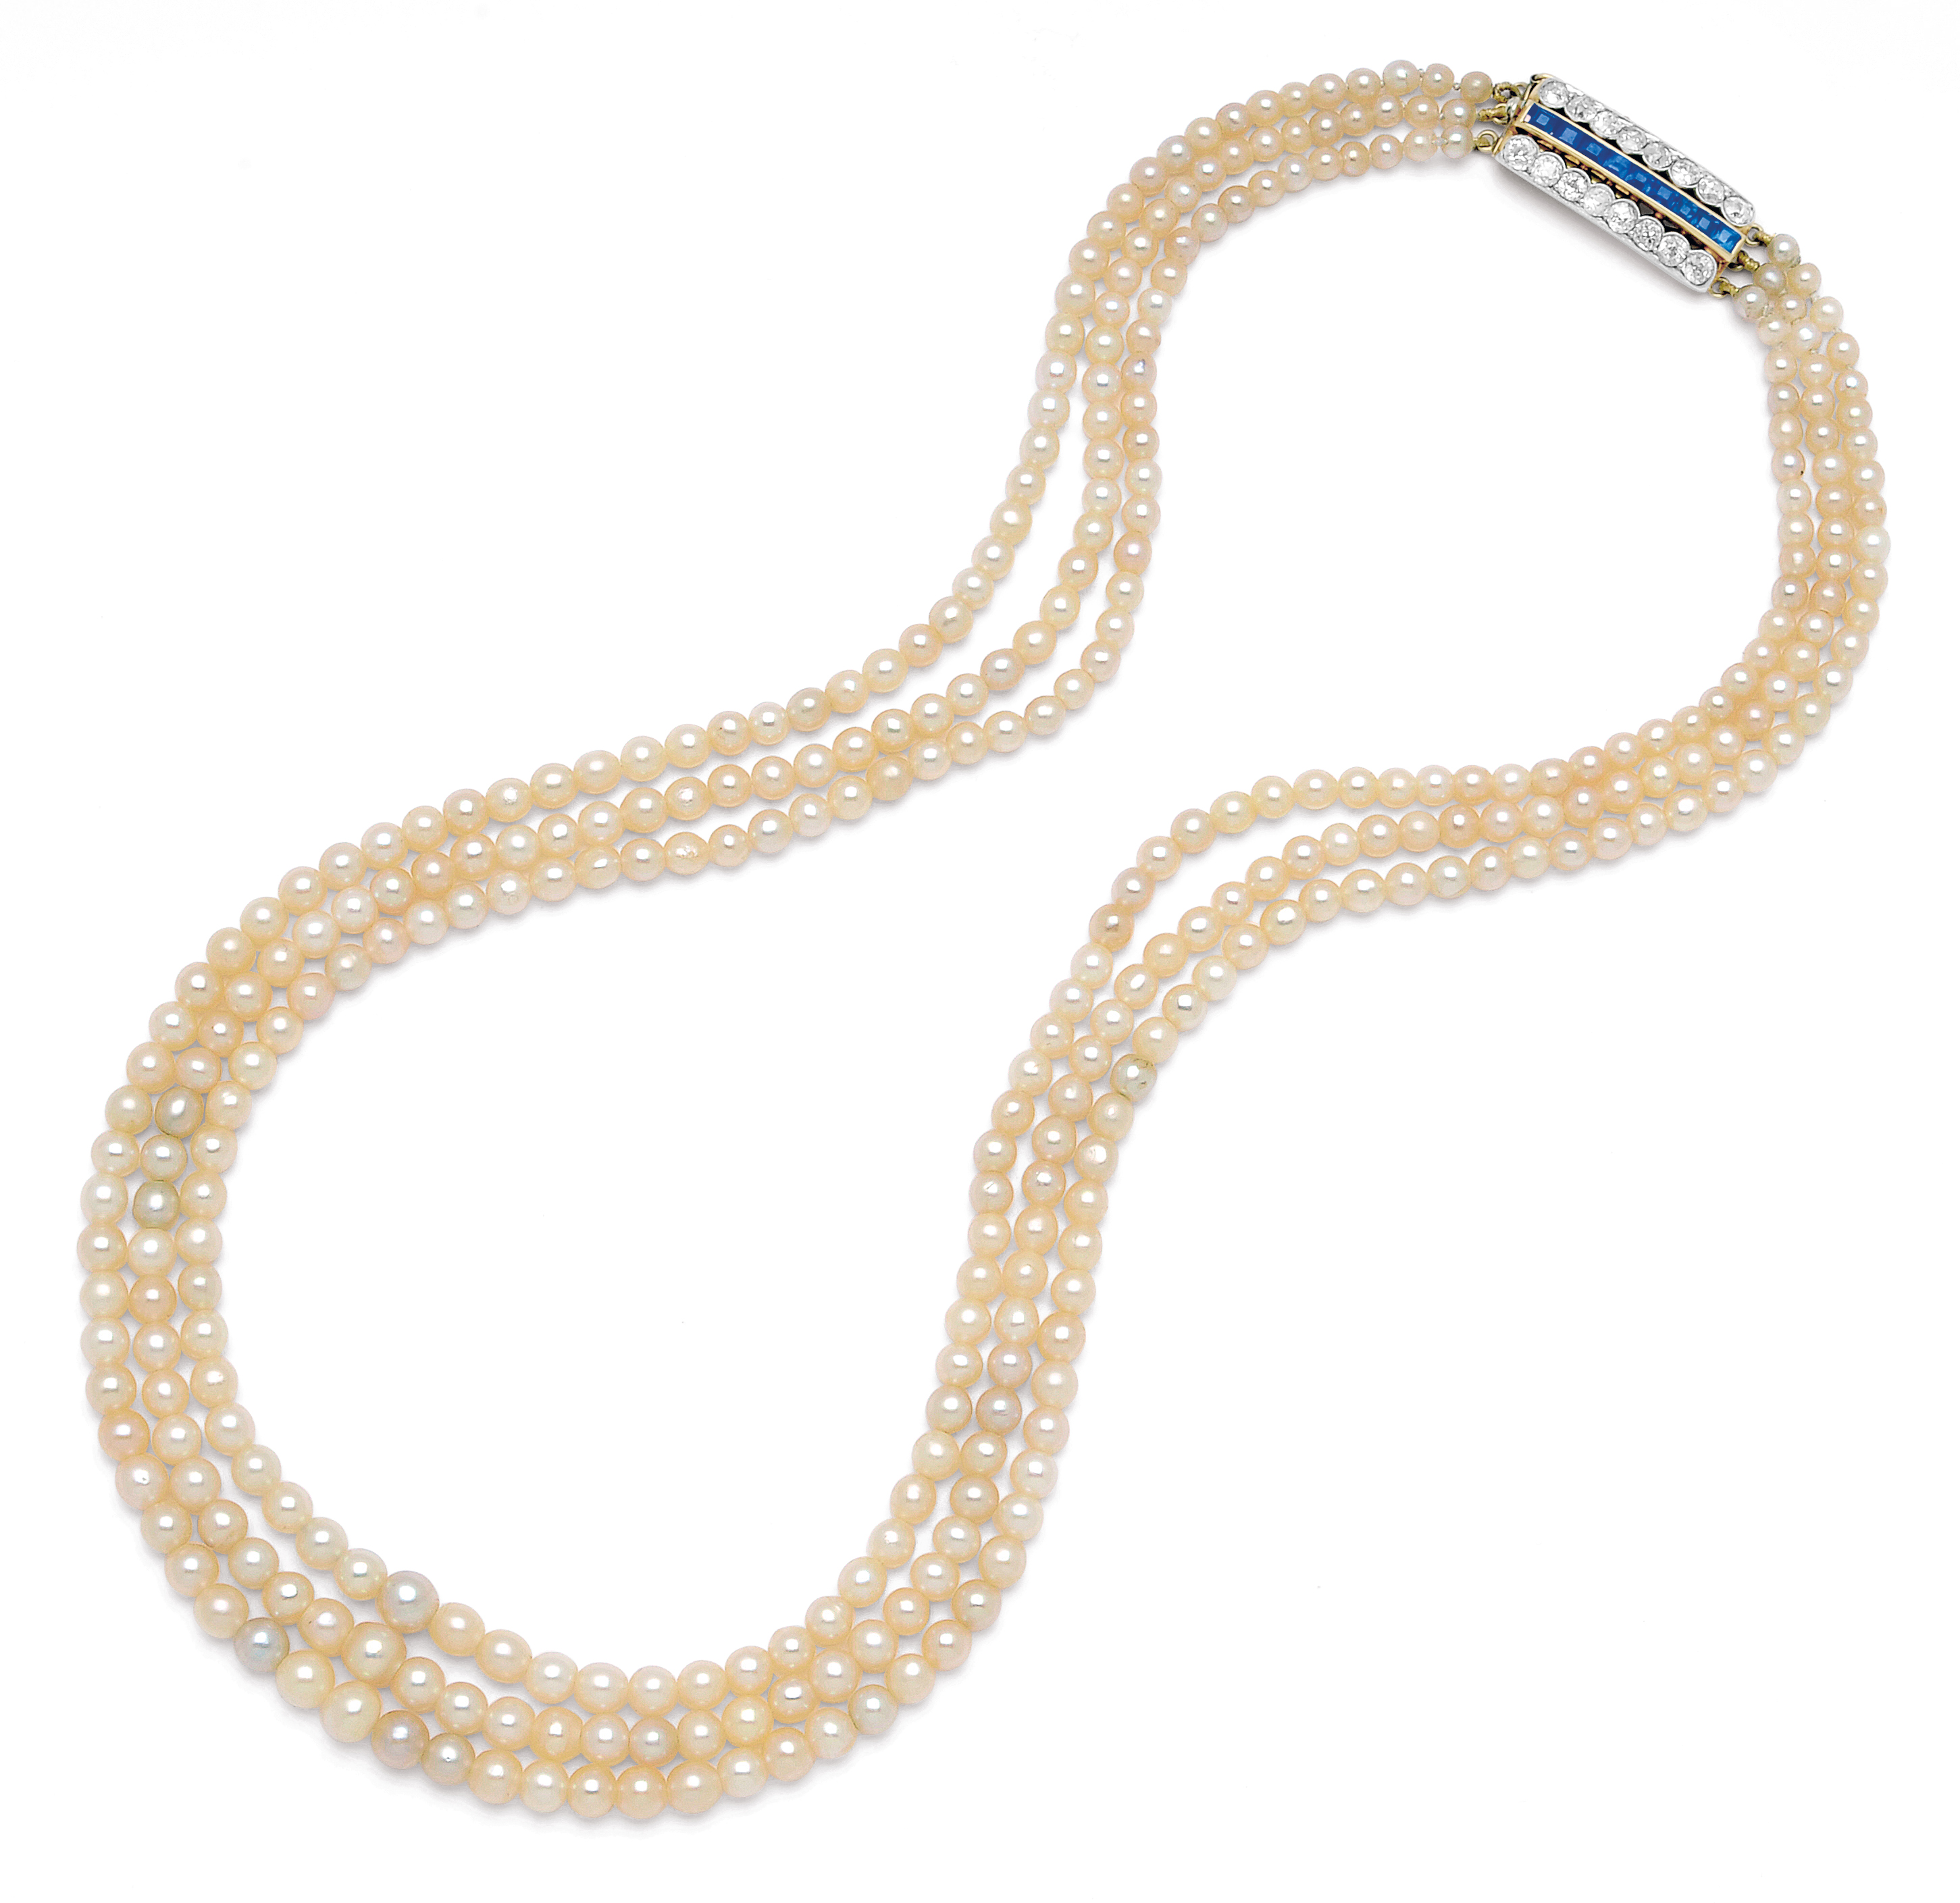 Antique Natural Pearl Sapphire and Diamond Necklace: Lot 277 Spring 2014 sale